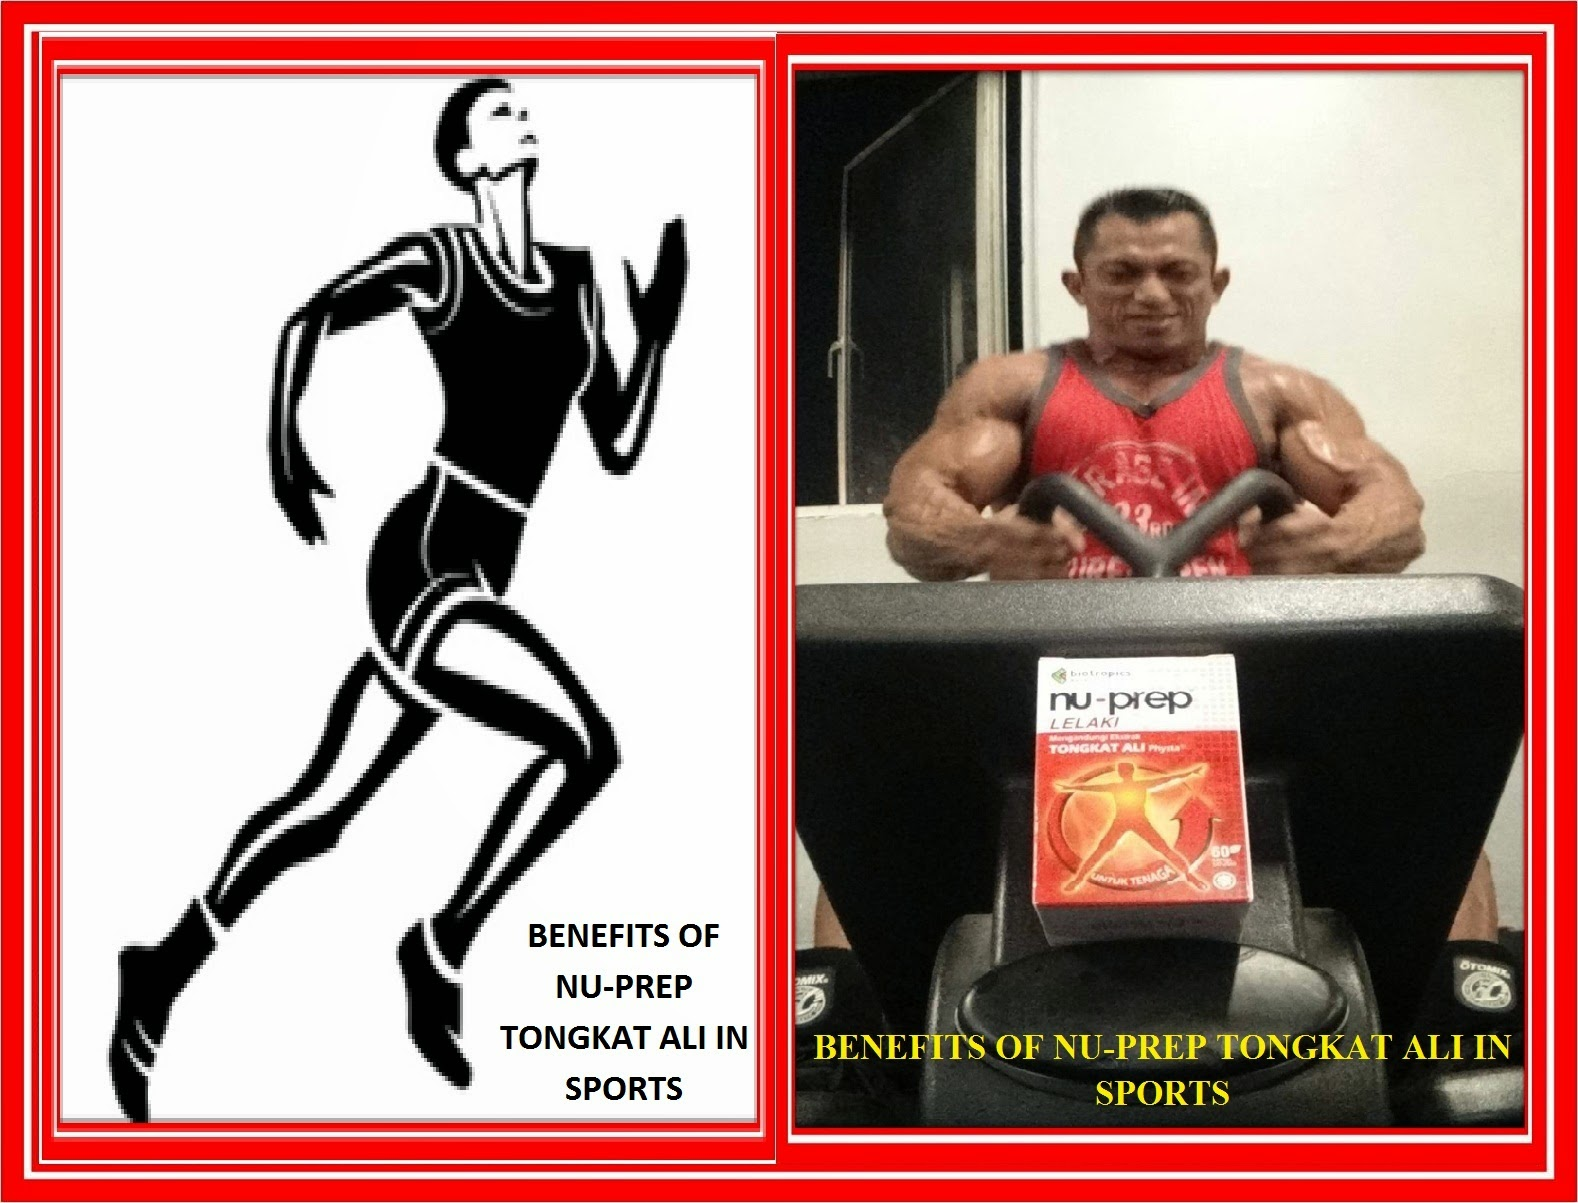 Benefits of Nu-Prep Tongkat Ali in Sports.